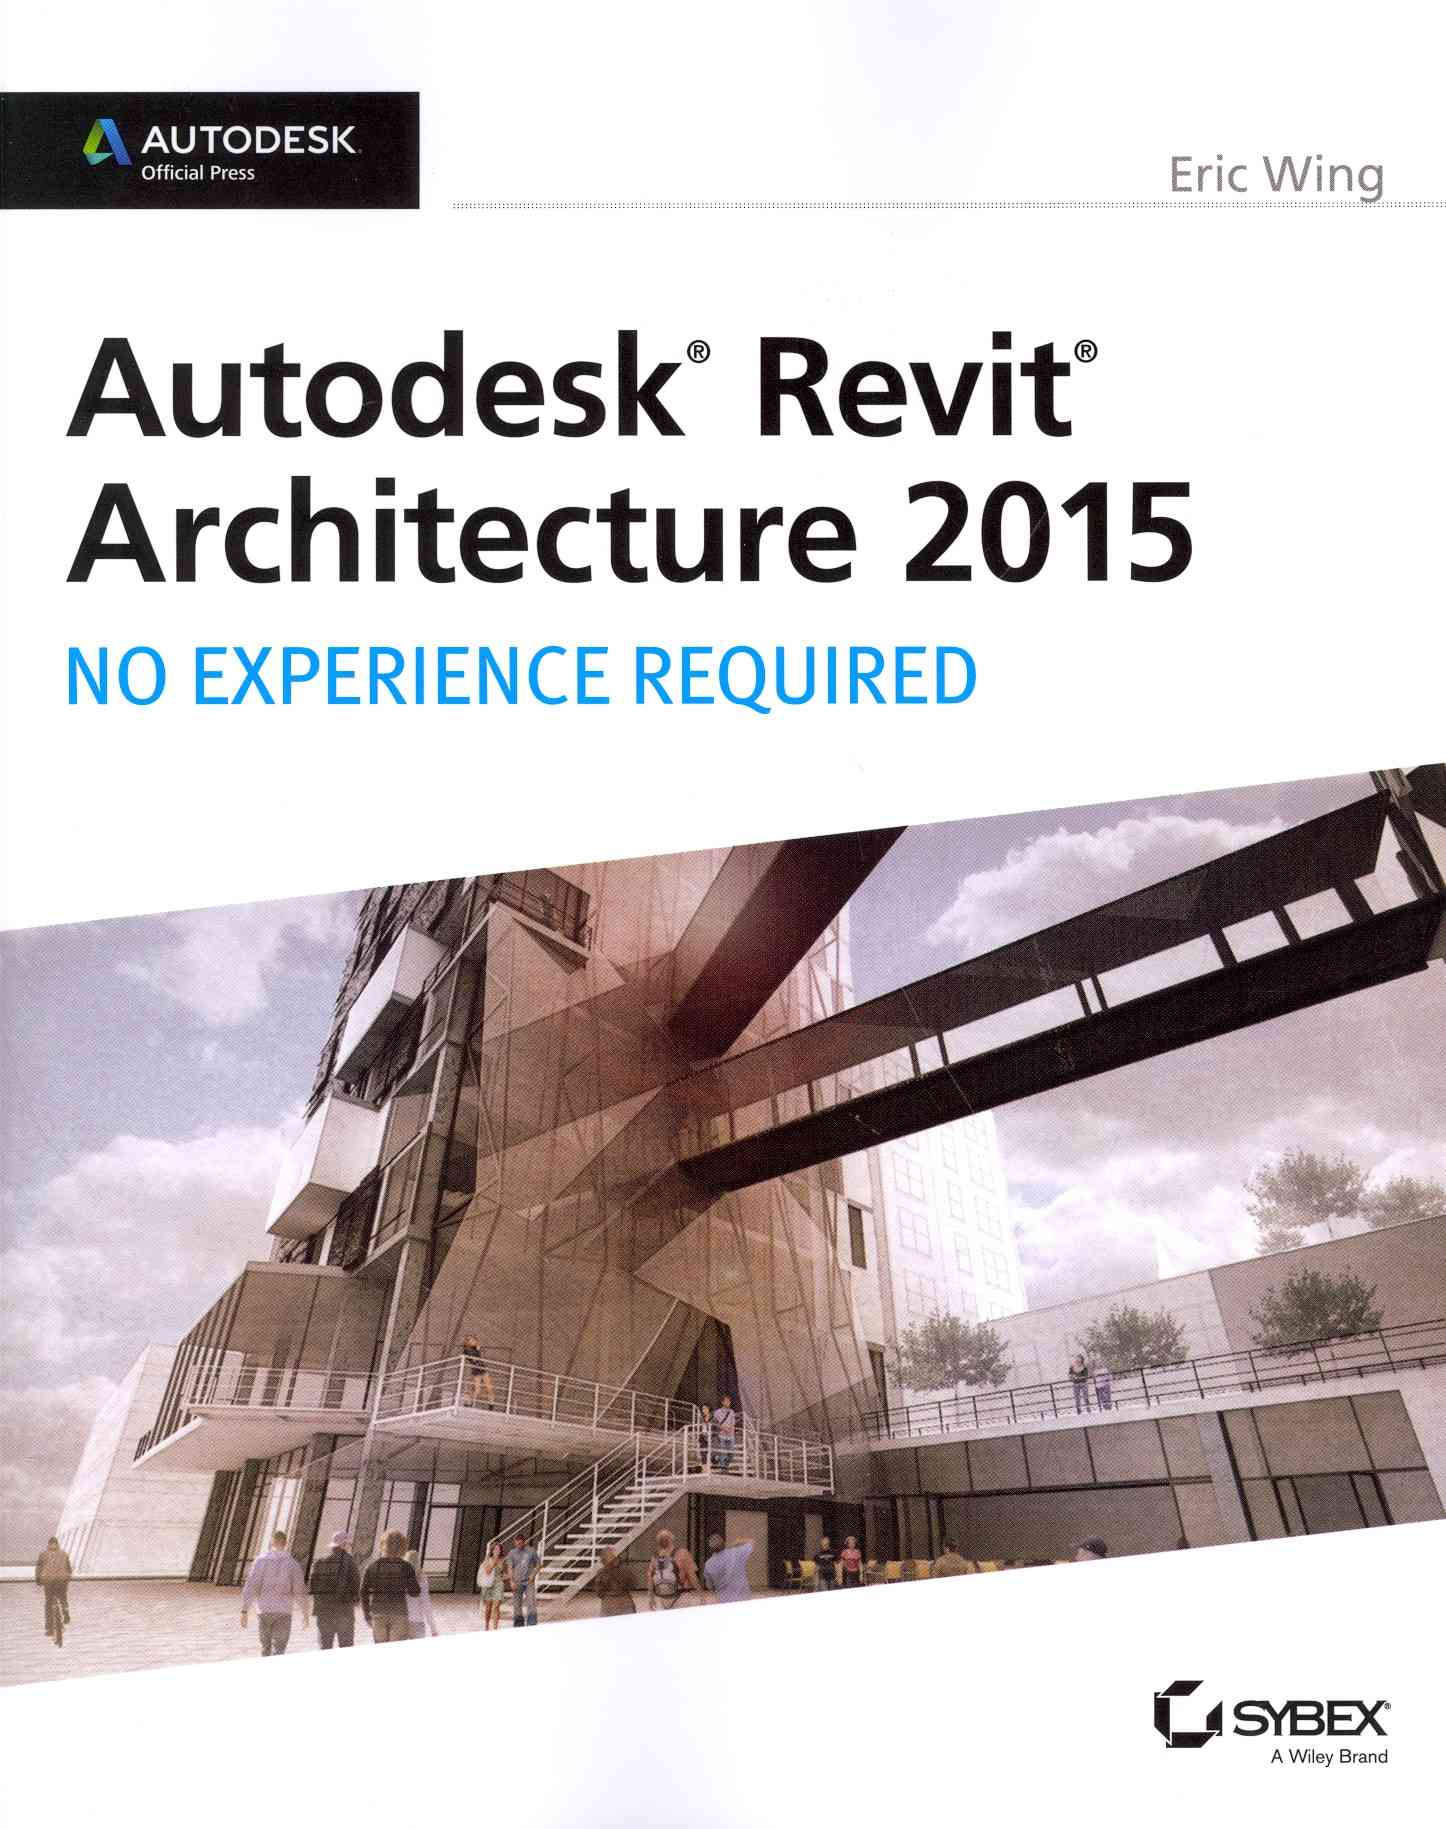 Autodesk Revit Architecture 2015 By Wing, Eric